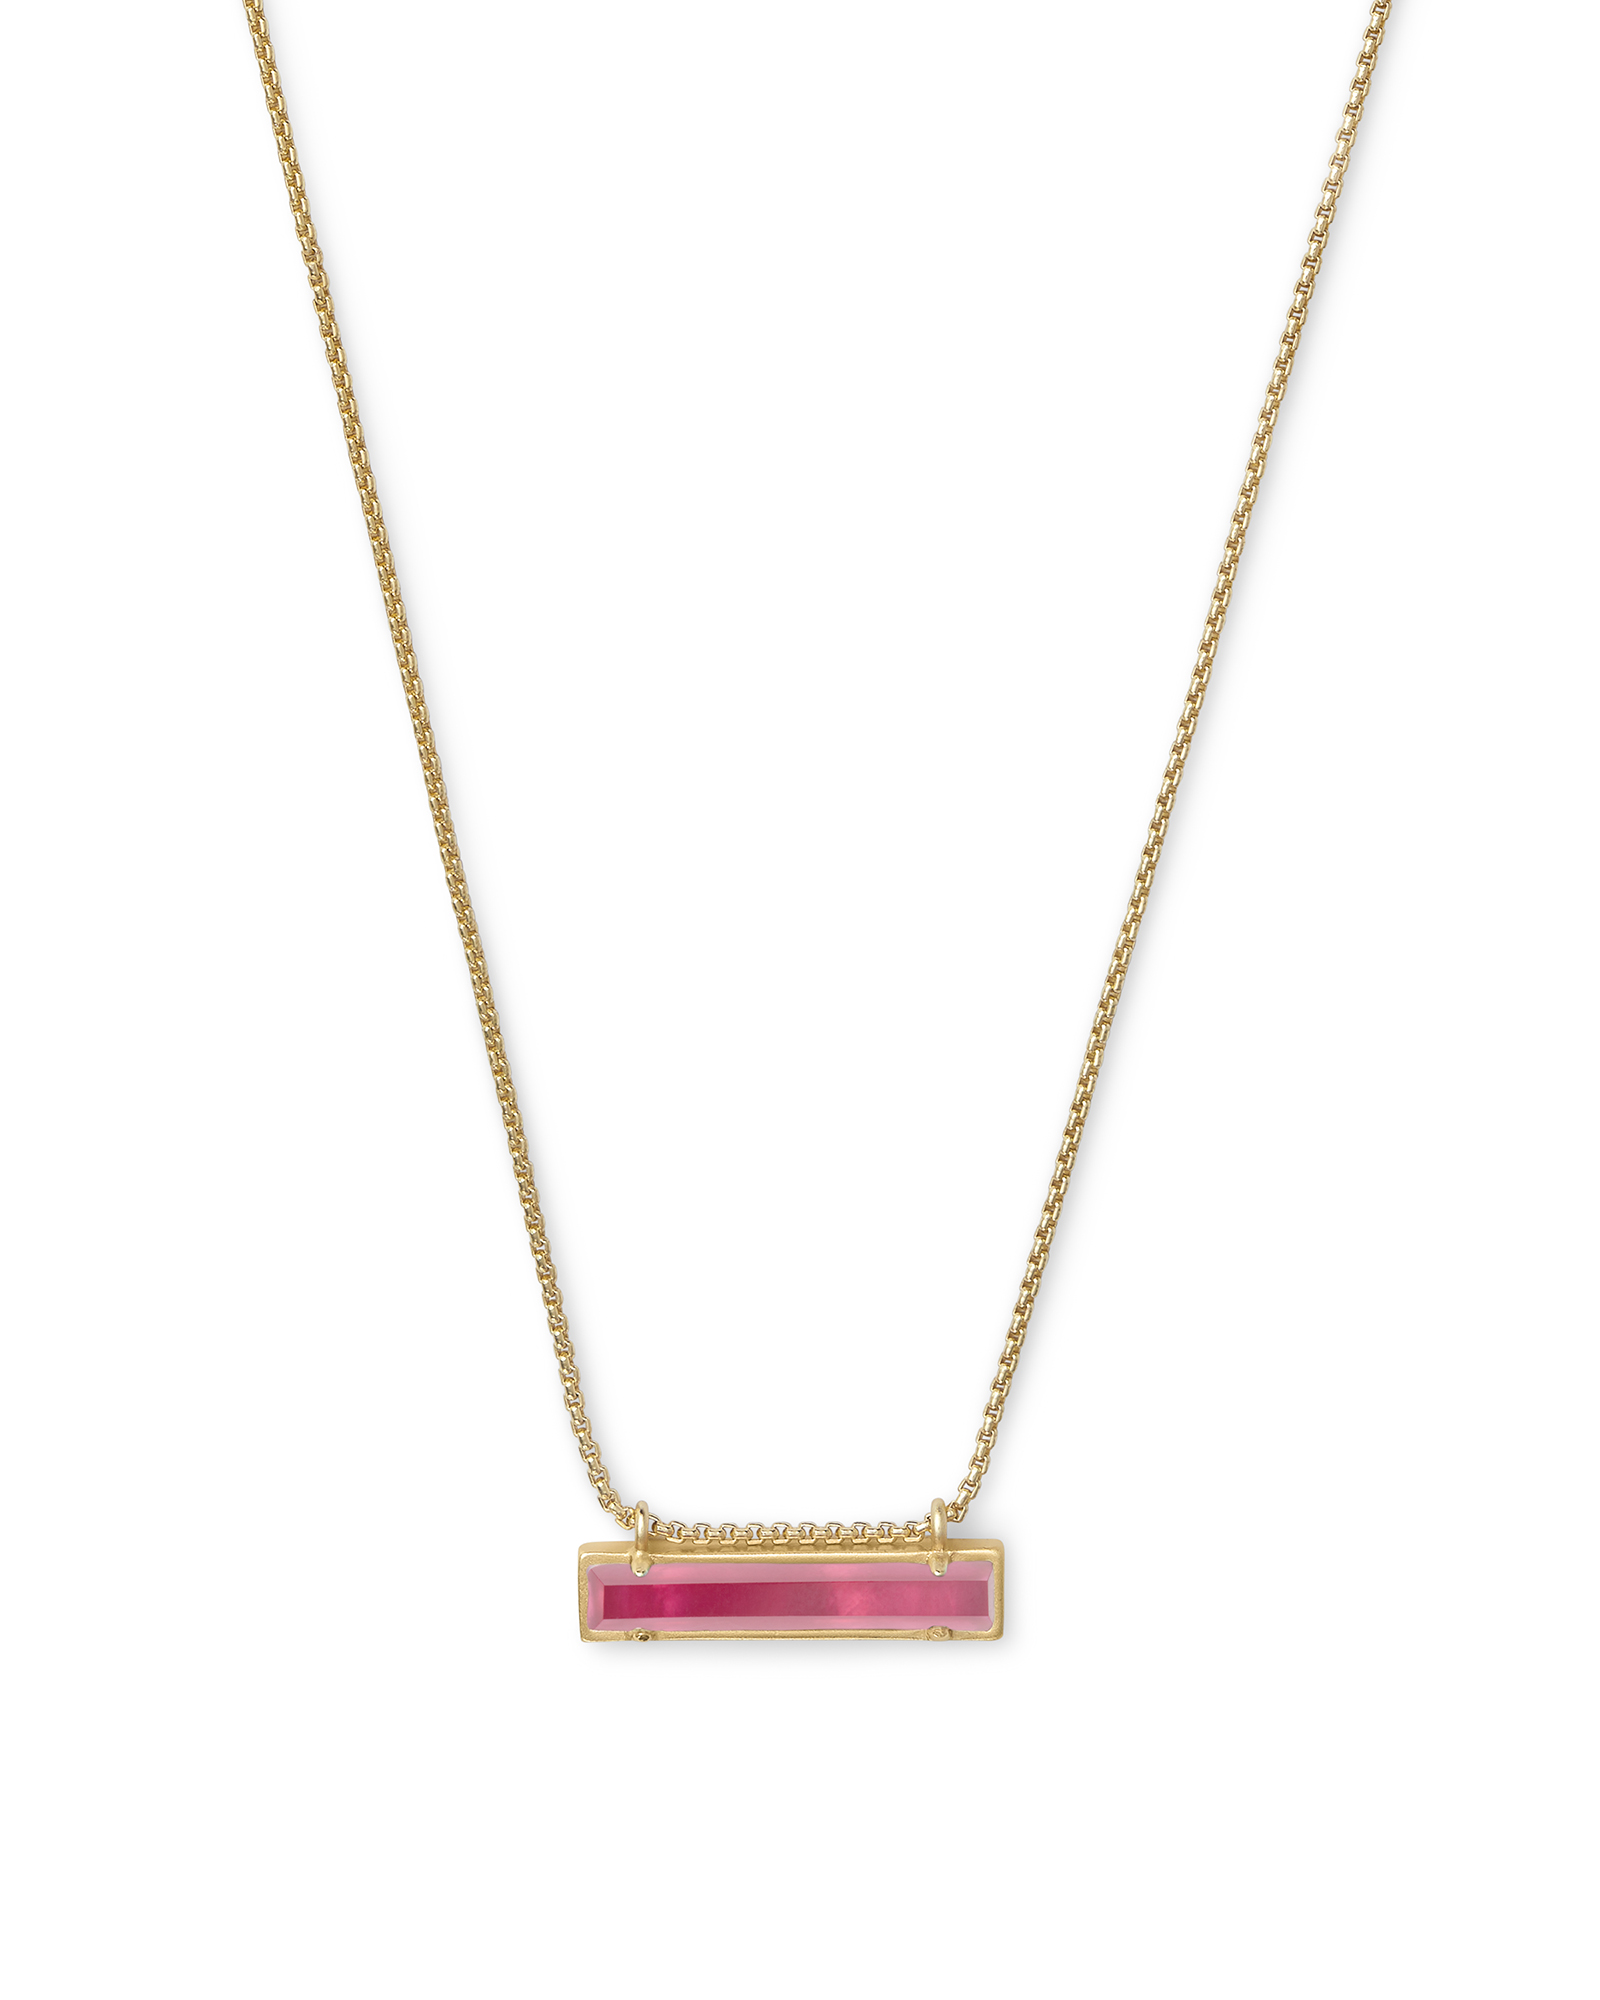 Leanor Gold Pendant Necklace in Berry Illusion